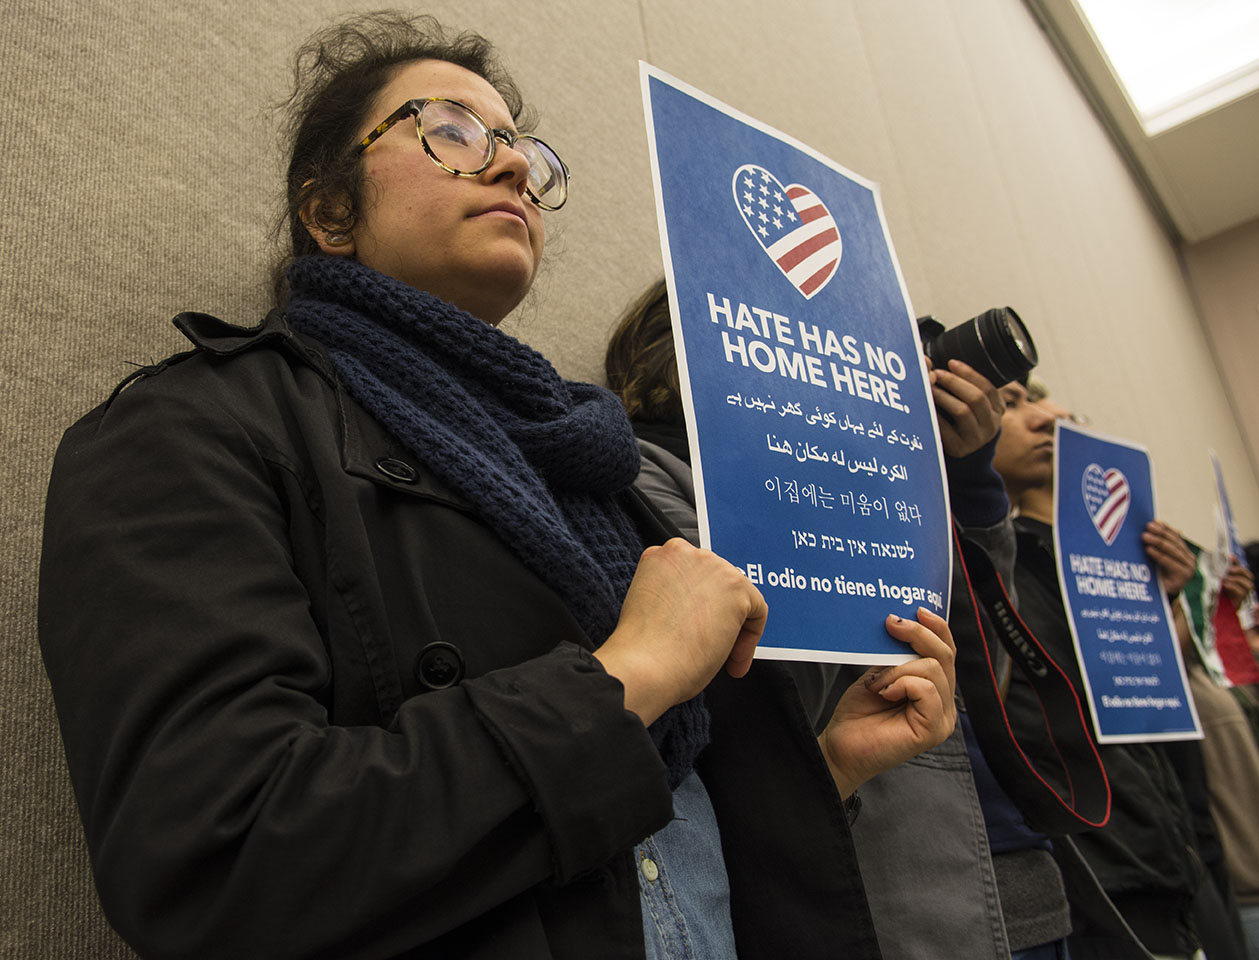 "Martha Osornio, a senior from Chicago studying cinema and photography, holds a ""Hate has no home here."" sign Tuesday, April 11, 2017, during a city council meeting at the Carbondale Civic Center. Osornio, whose family immigrated illegally to the United States in 1992, attended the meeting with five other students from the Hispanic Student Council to support the resolution establishing Carbondale as a safe and welcoming community. Osornio said she has friends in Chicago who fear they might be deported for insignificant issues if they enrolled at SIU."